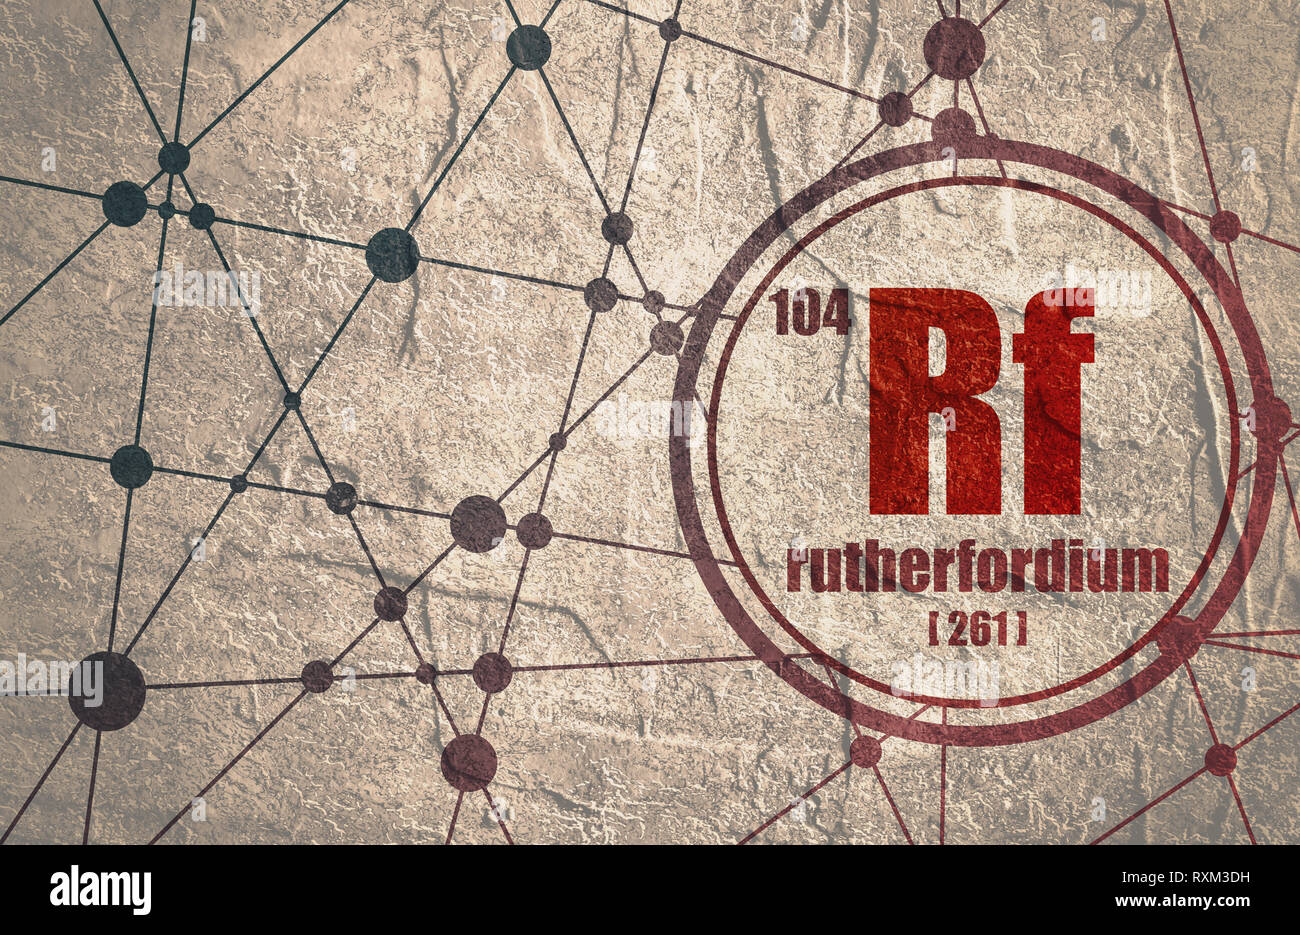 Rutherfordium chemical element. Stock Photo